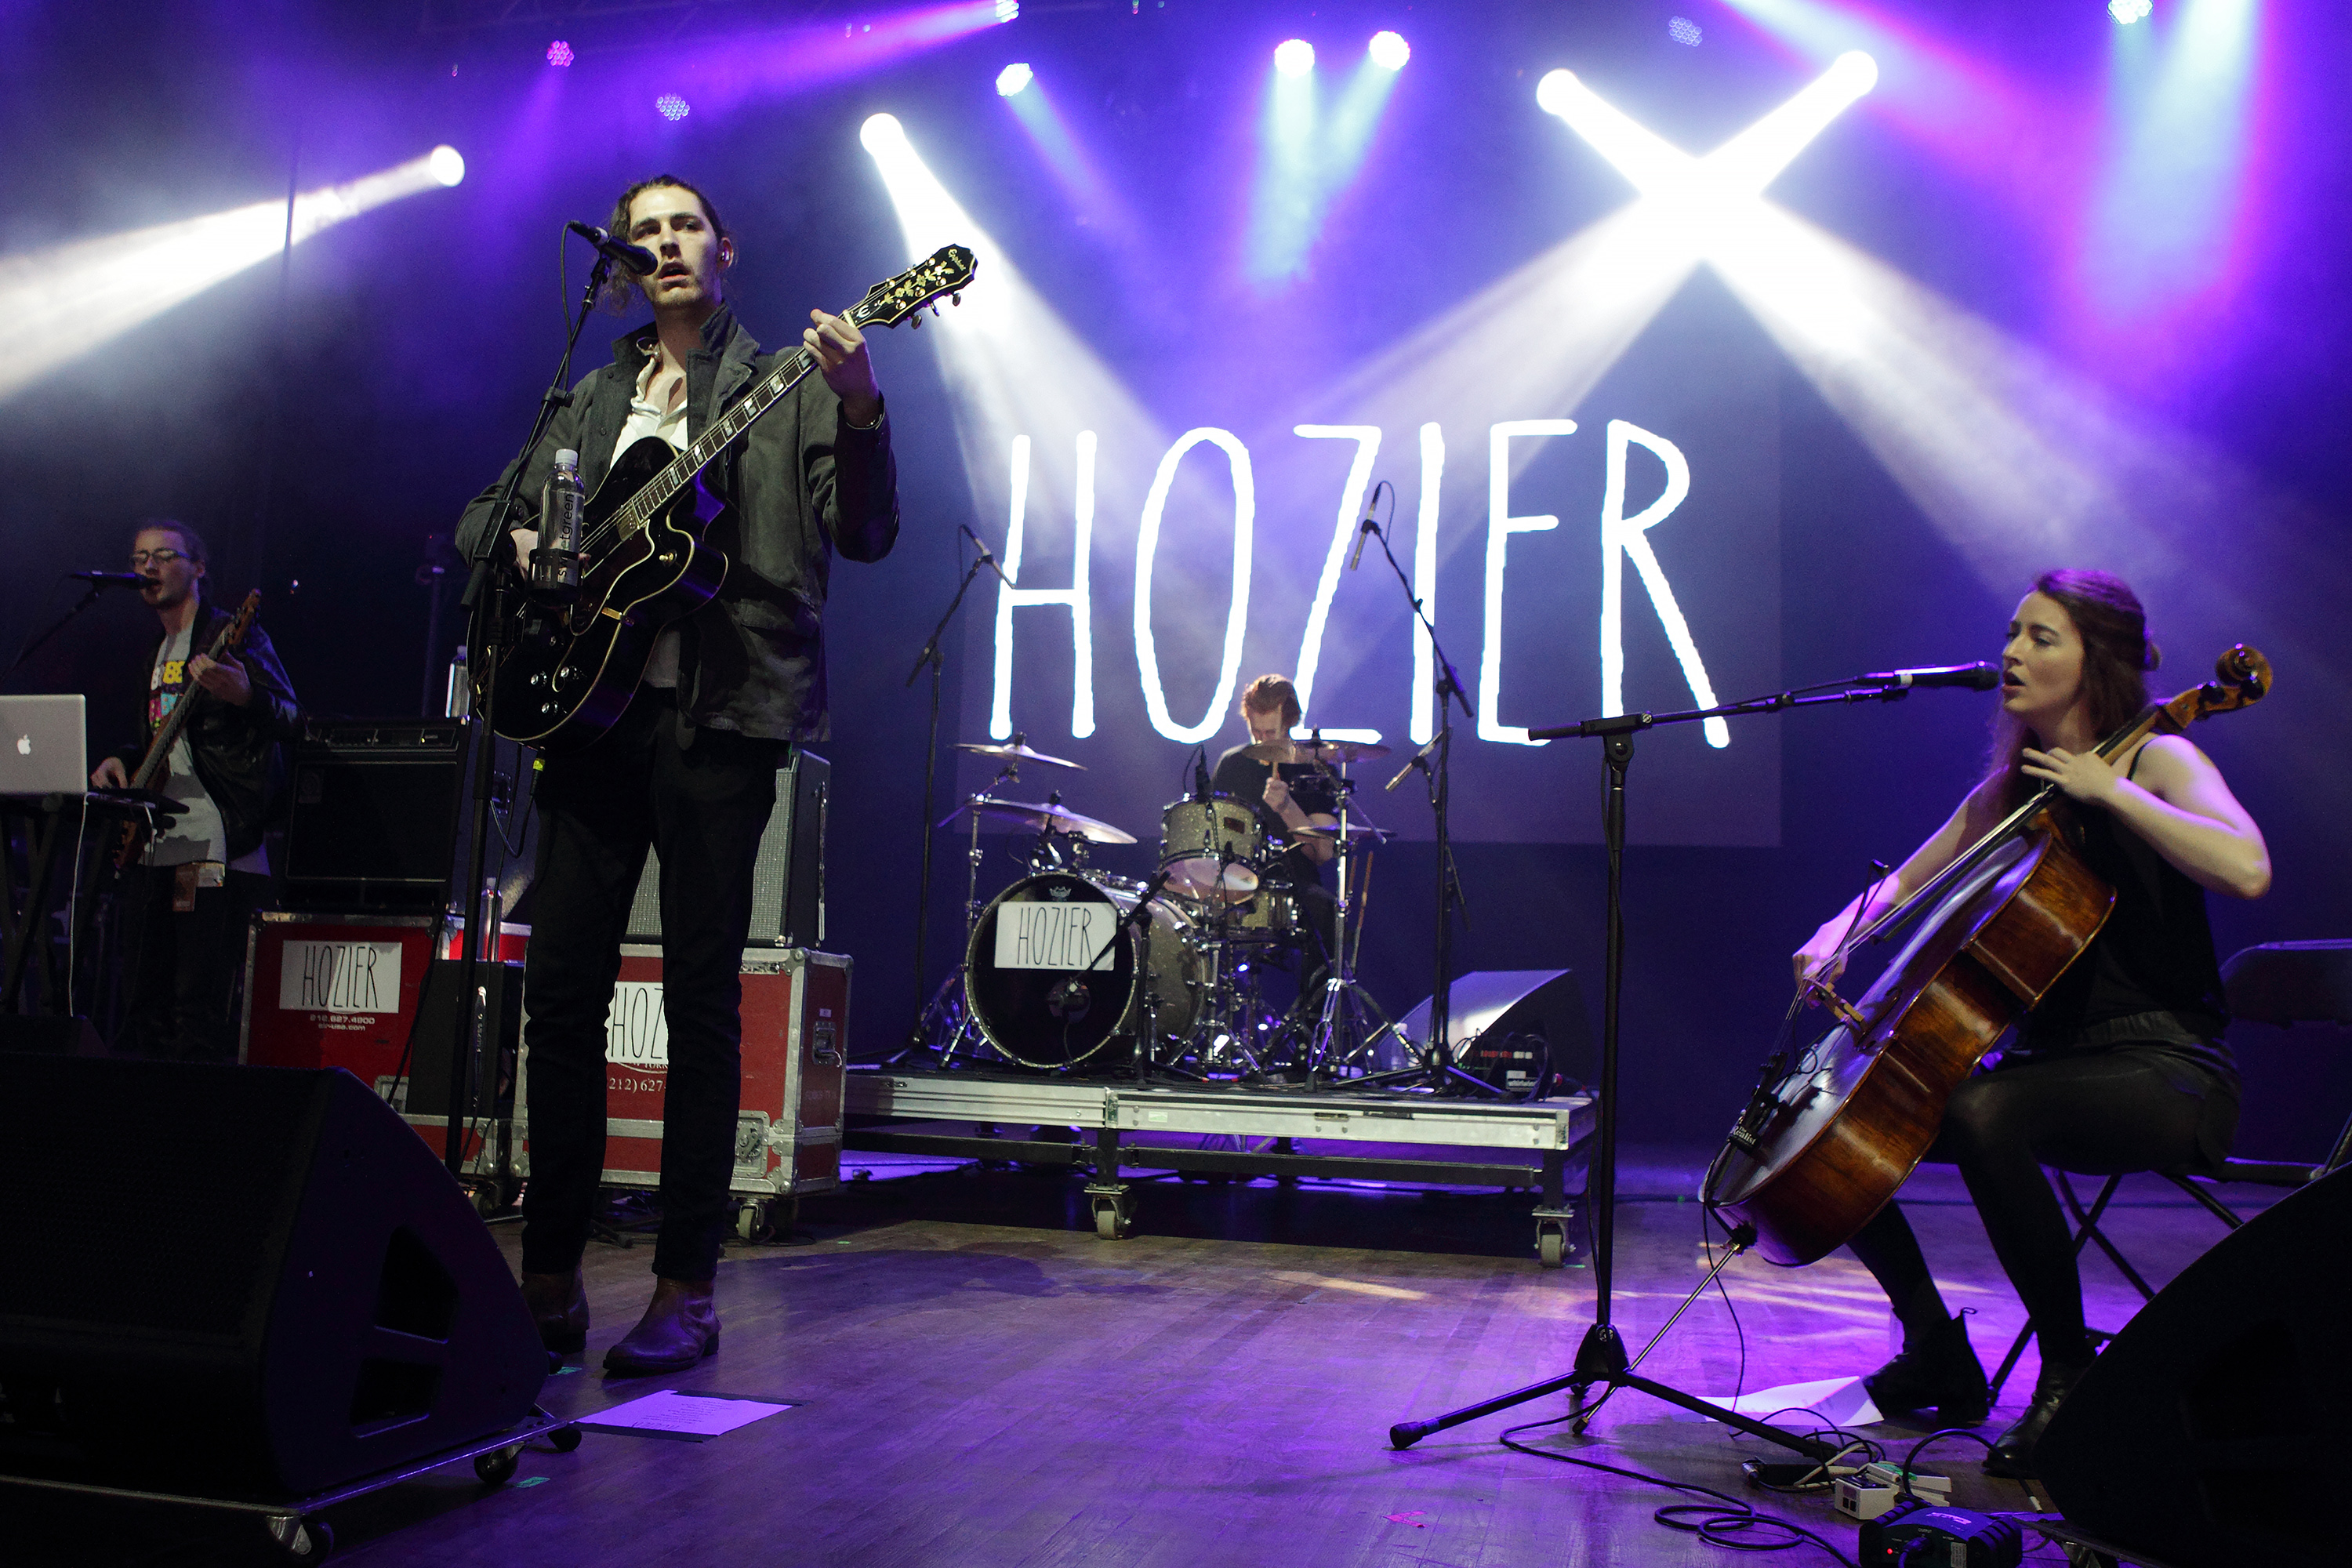 Andrew Hozier-Byrne of the band Hozier performs in concert during the Sweetlife Festival at Merriweather Post Pavilion on May 10, 2014, in Columbia, Md.